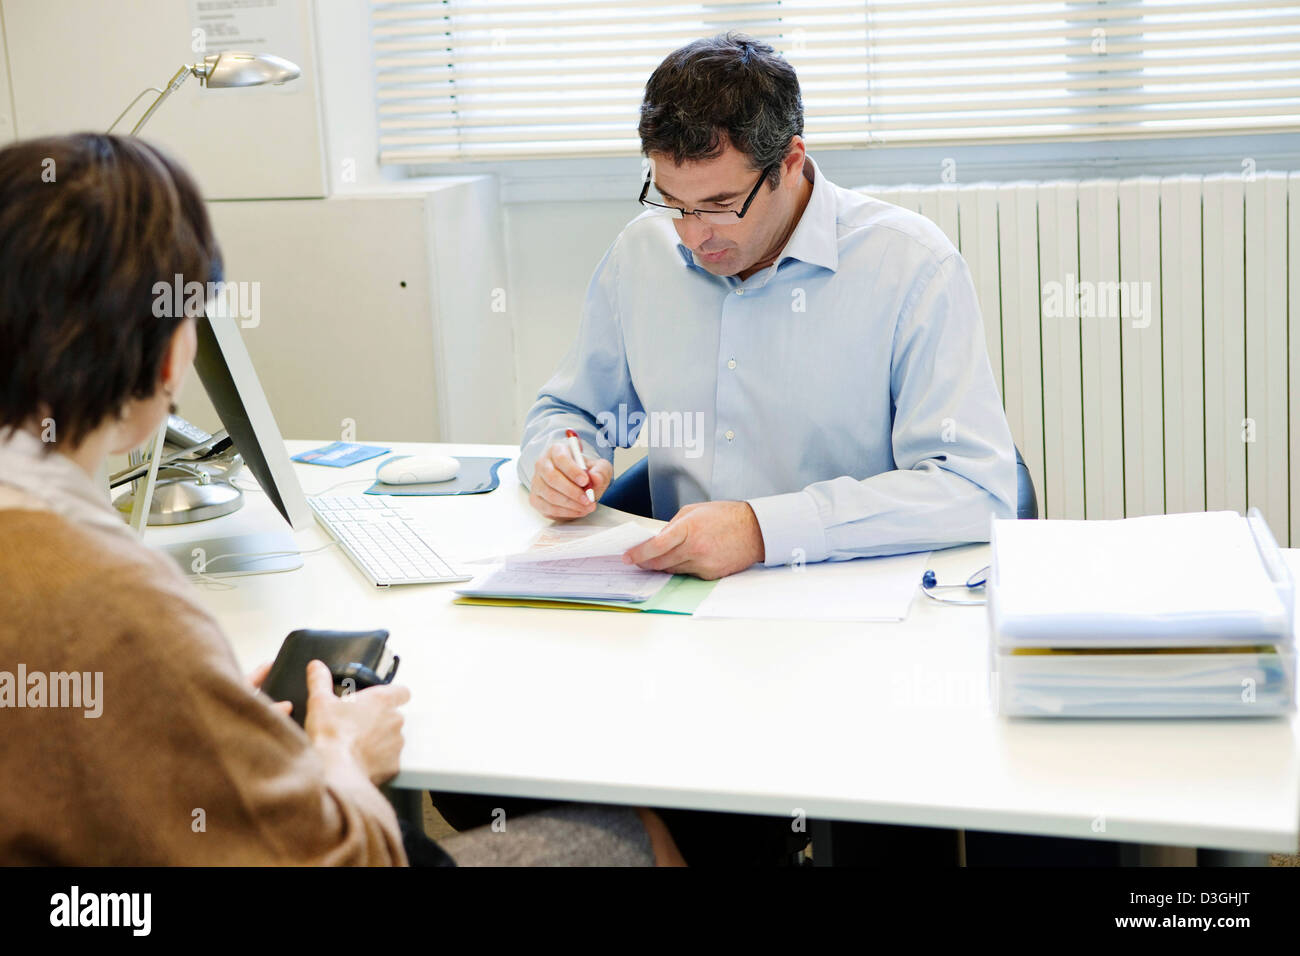 WOMAN IN CONSULTATION, DIALOGUE - Stock Image